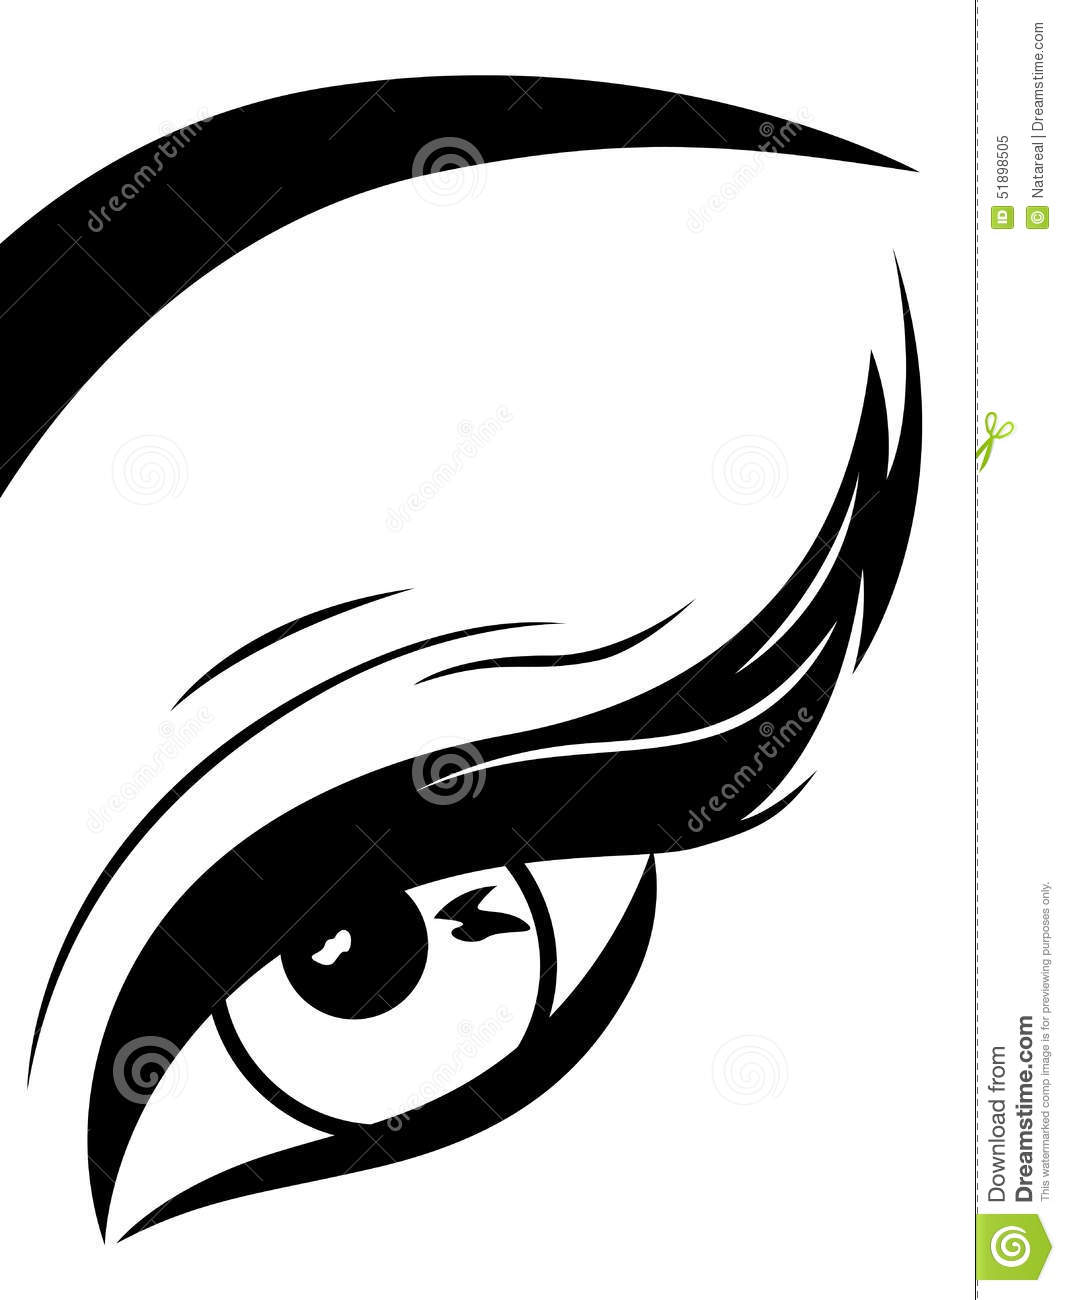 Eye With Fluffy Eyelid Close-up Stock Vector - Illustration of ...